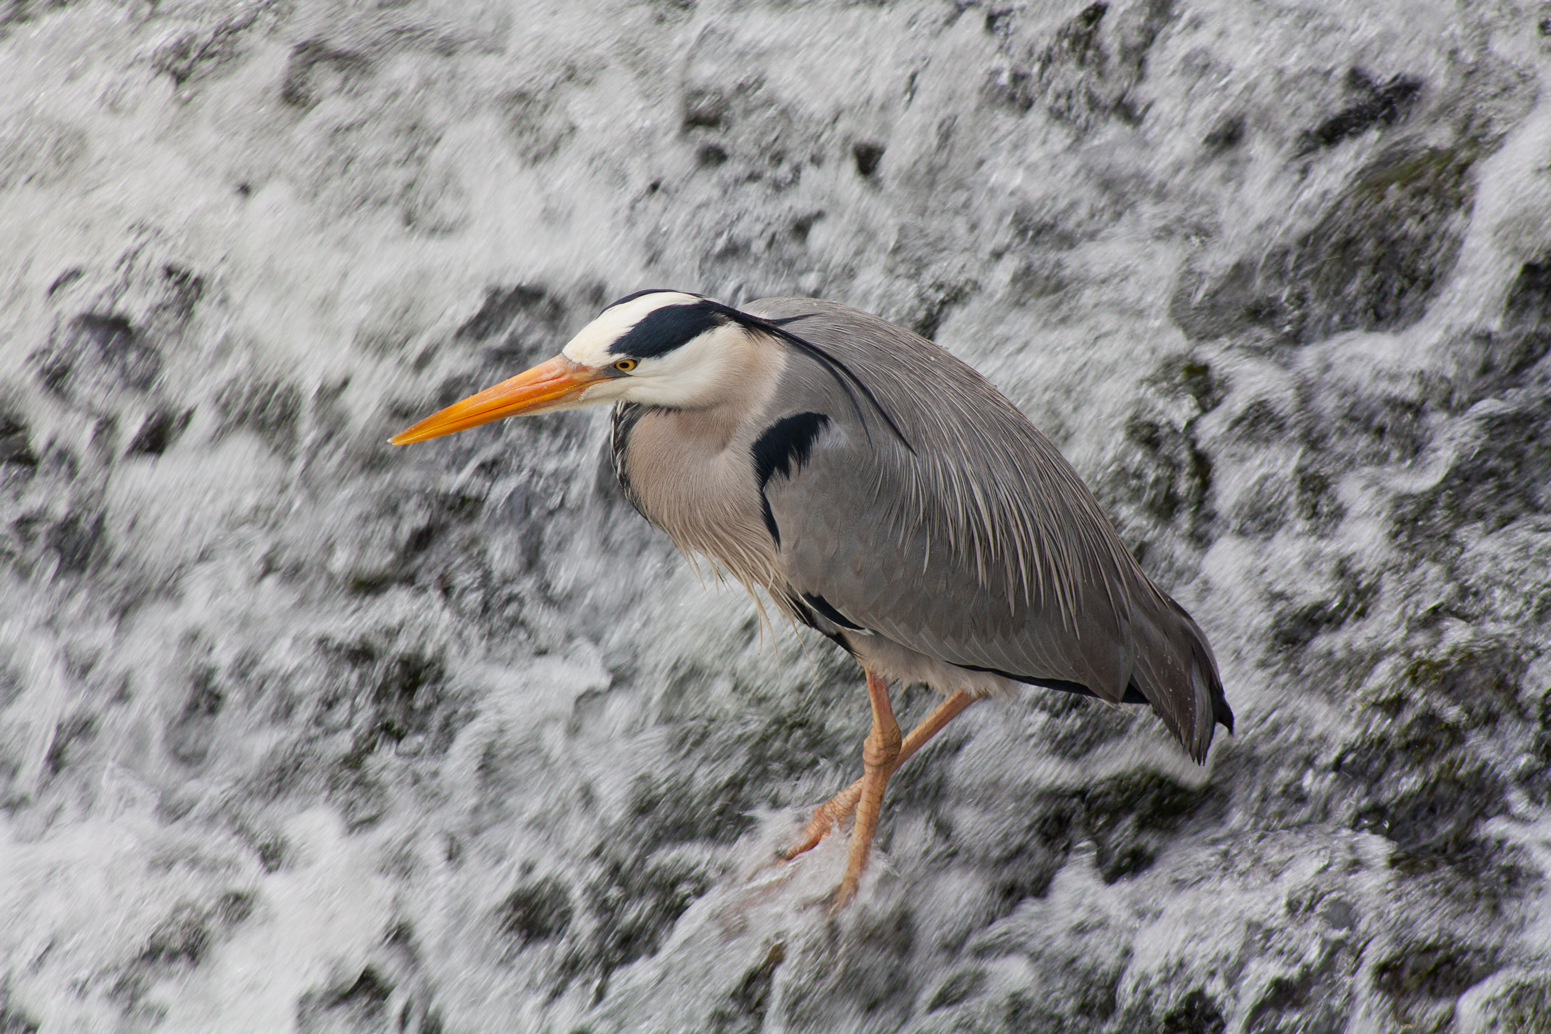 Grey Heron at Cahir, Co. Tipperary : 11/Project 52